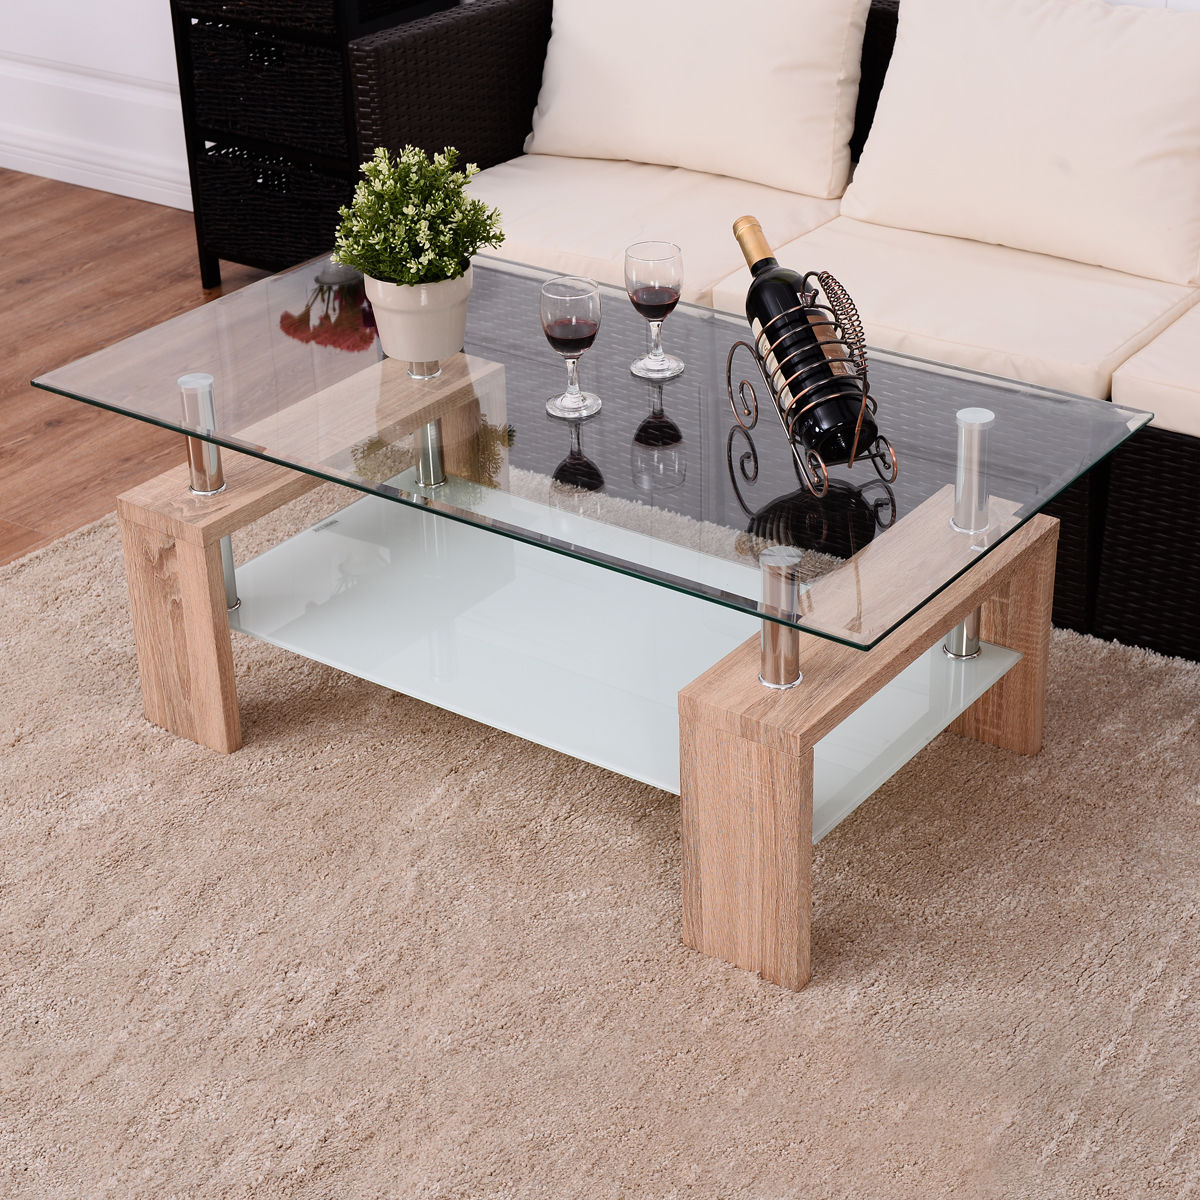 Giantex Rectangular Tempered Glass Coffee Table with Shelf Modern Wood Leg Side Tables Living Room Furniture HW54586SA solid pine wood folding round table 90cm natural cherry finish living room furniture modern large low round coffee table design